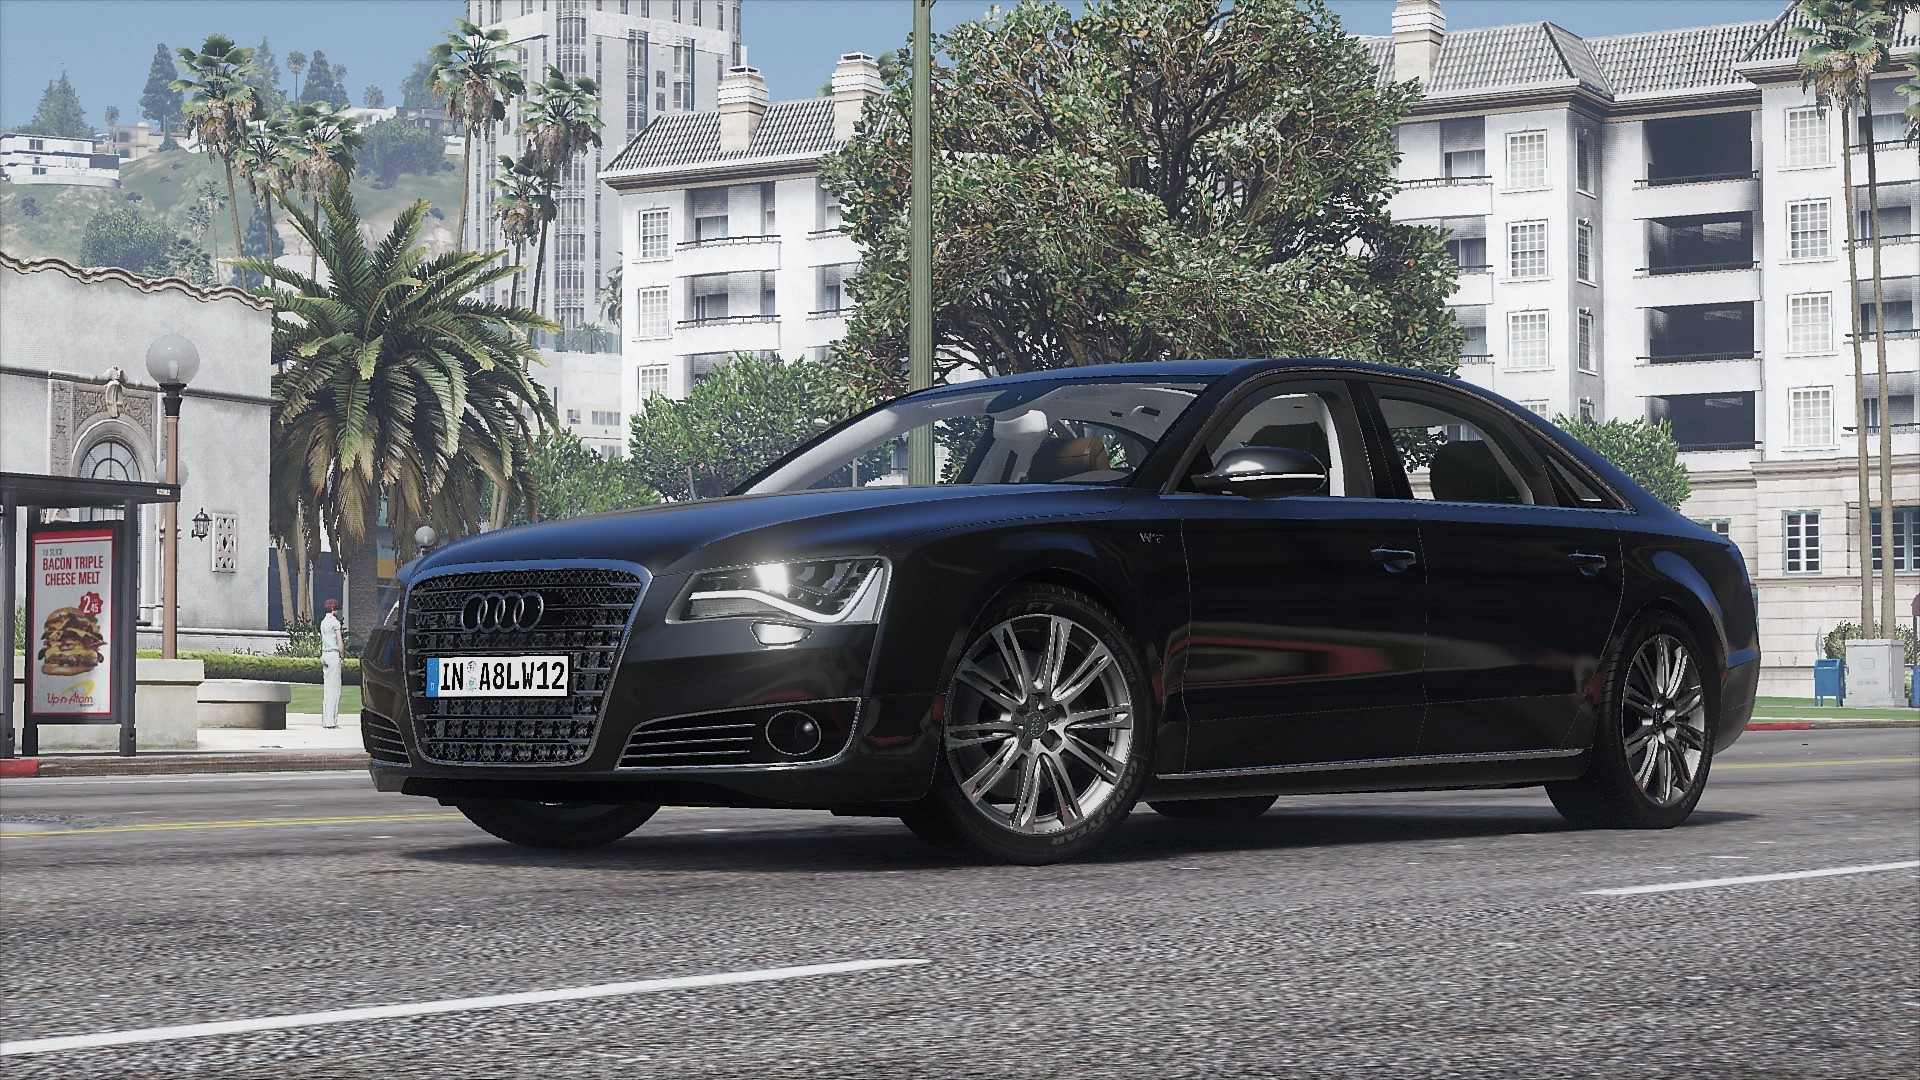 2011 audi a8 l w12 quattro d4 add on tuning gta5. Black Bedroom Furniture Sets. Home Design Ideas